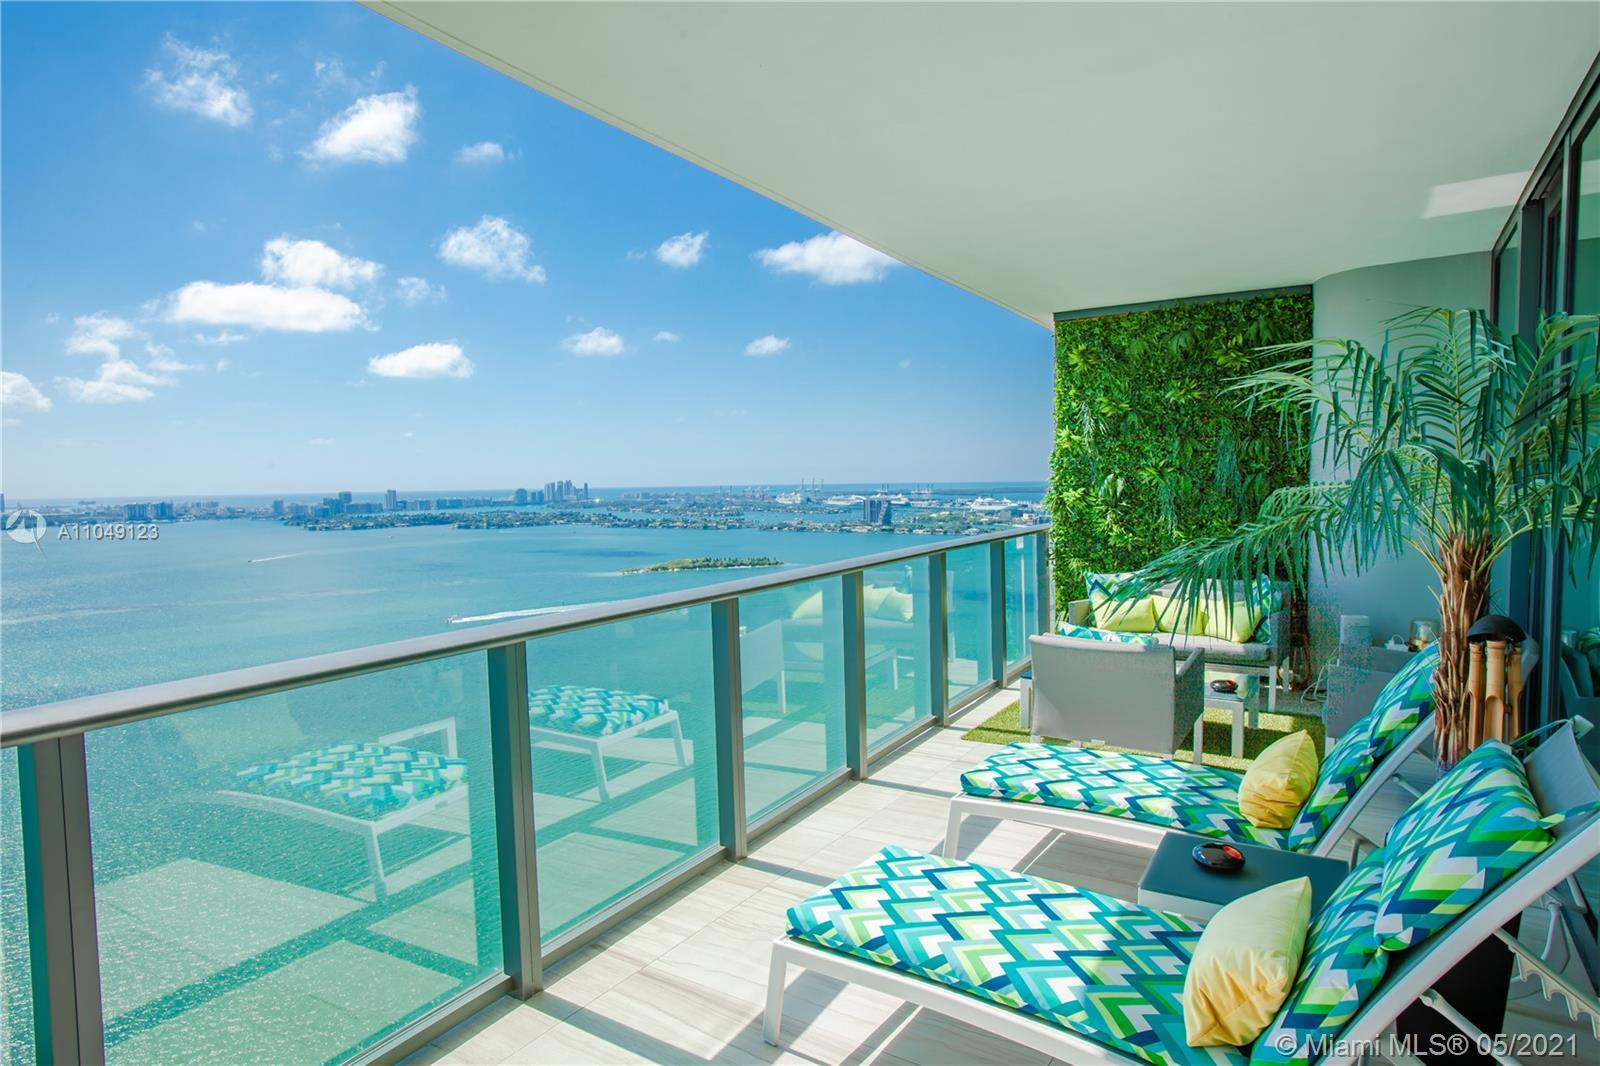 IN WELL KNOWN, TRENDY & VIBRANT ONE PARAISO COMPLEX,THIS FULLY UPGRADED AND FINELY RE-FINISHED RESID